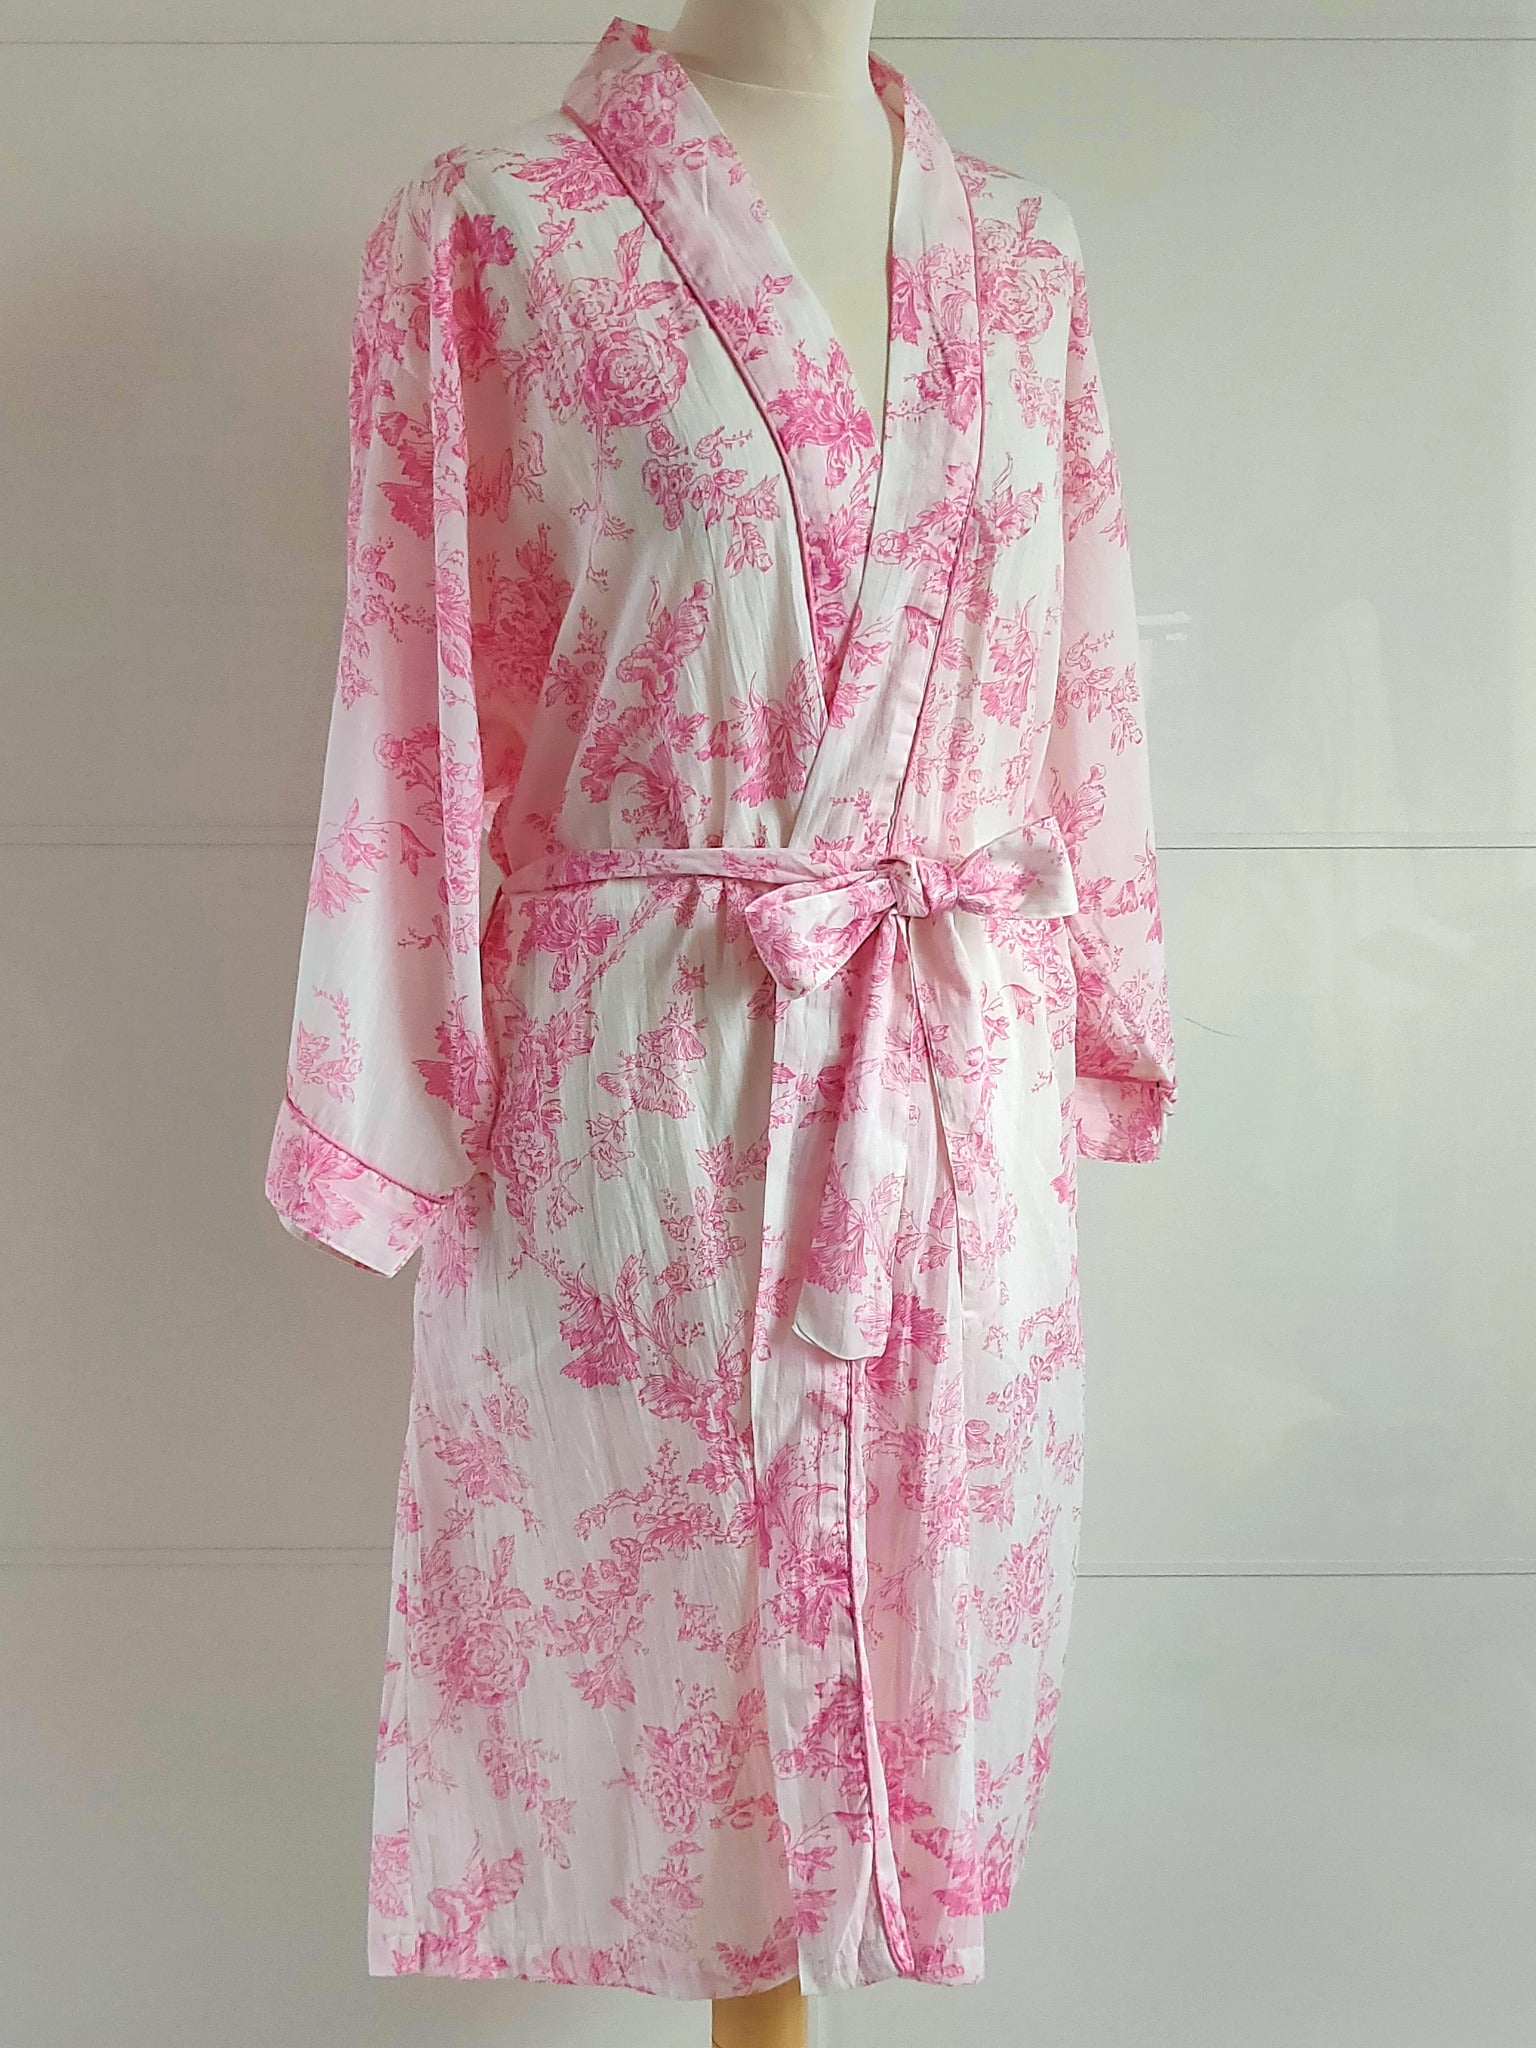 Kimono Robe - Toile Print - Pink - An Indian Summer